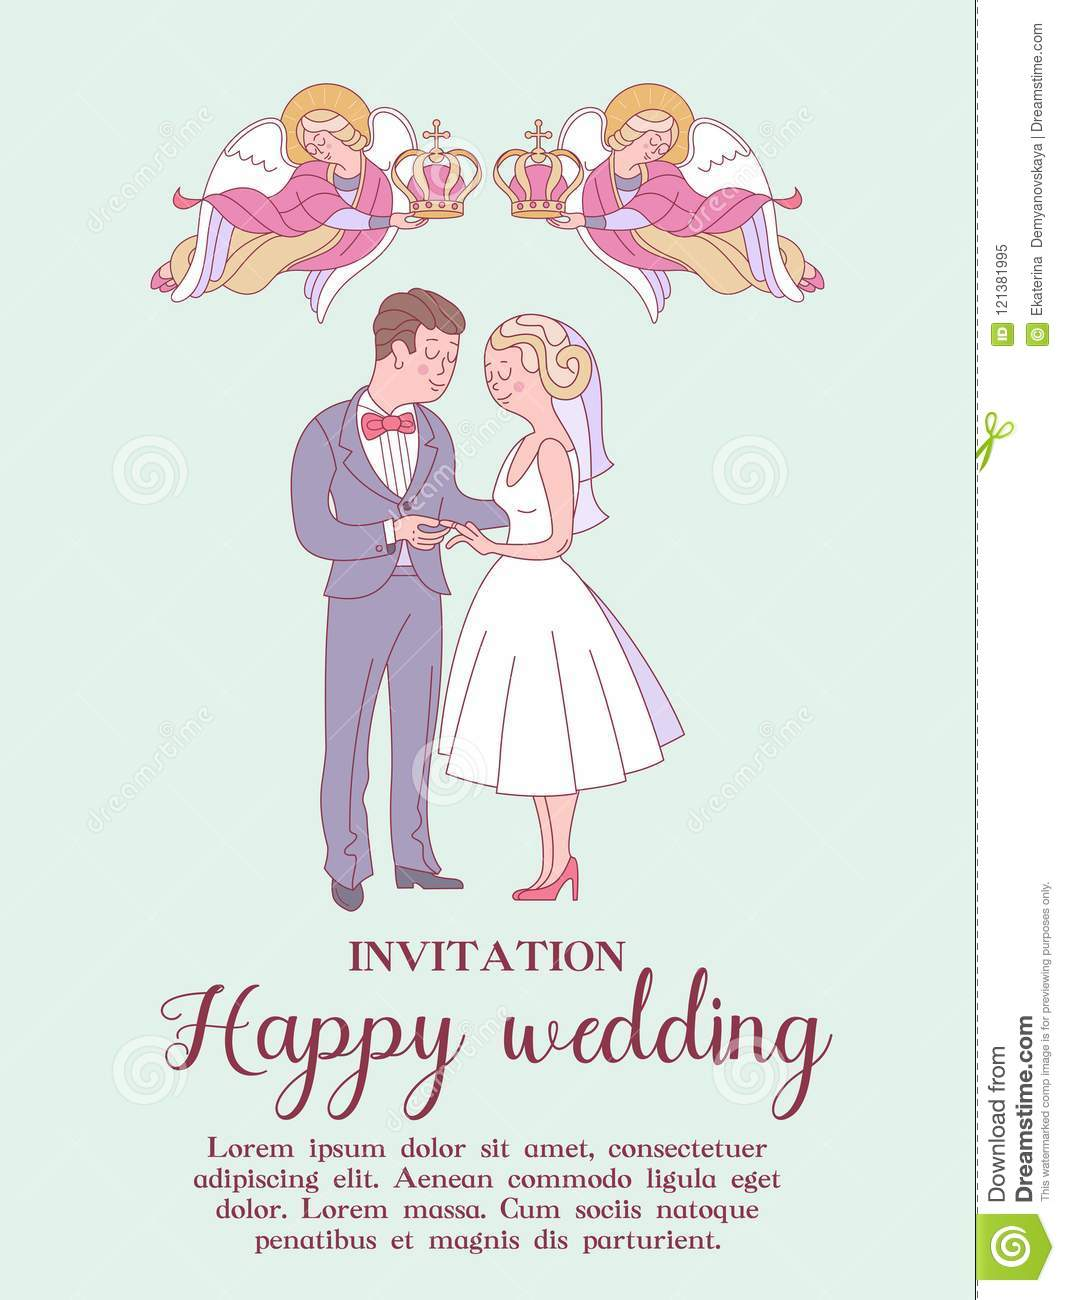 happy weddings wedding card wedding invitation bride and groom two angels hold wedding crowns over the heads of the bride and groom cute illustration